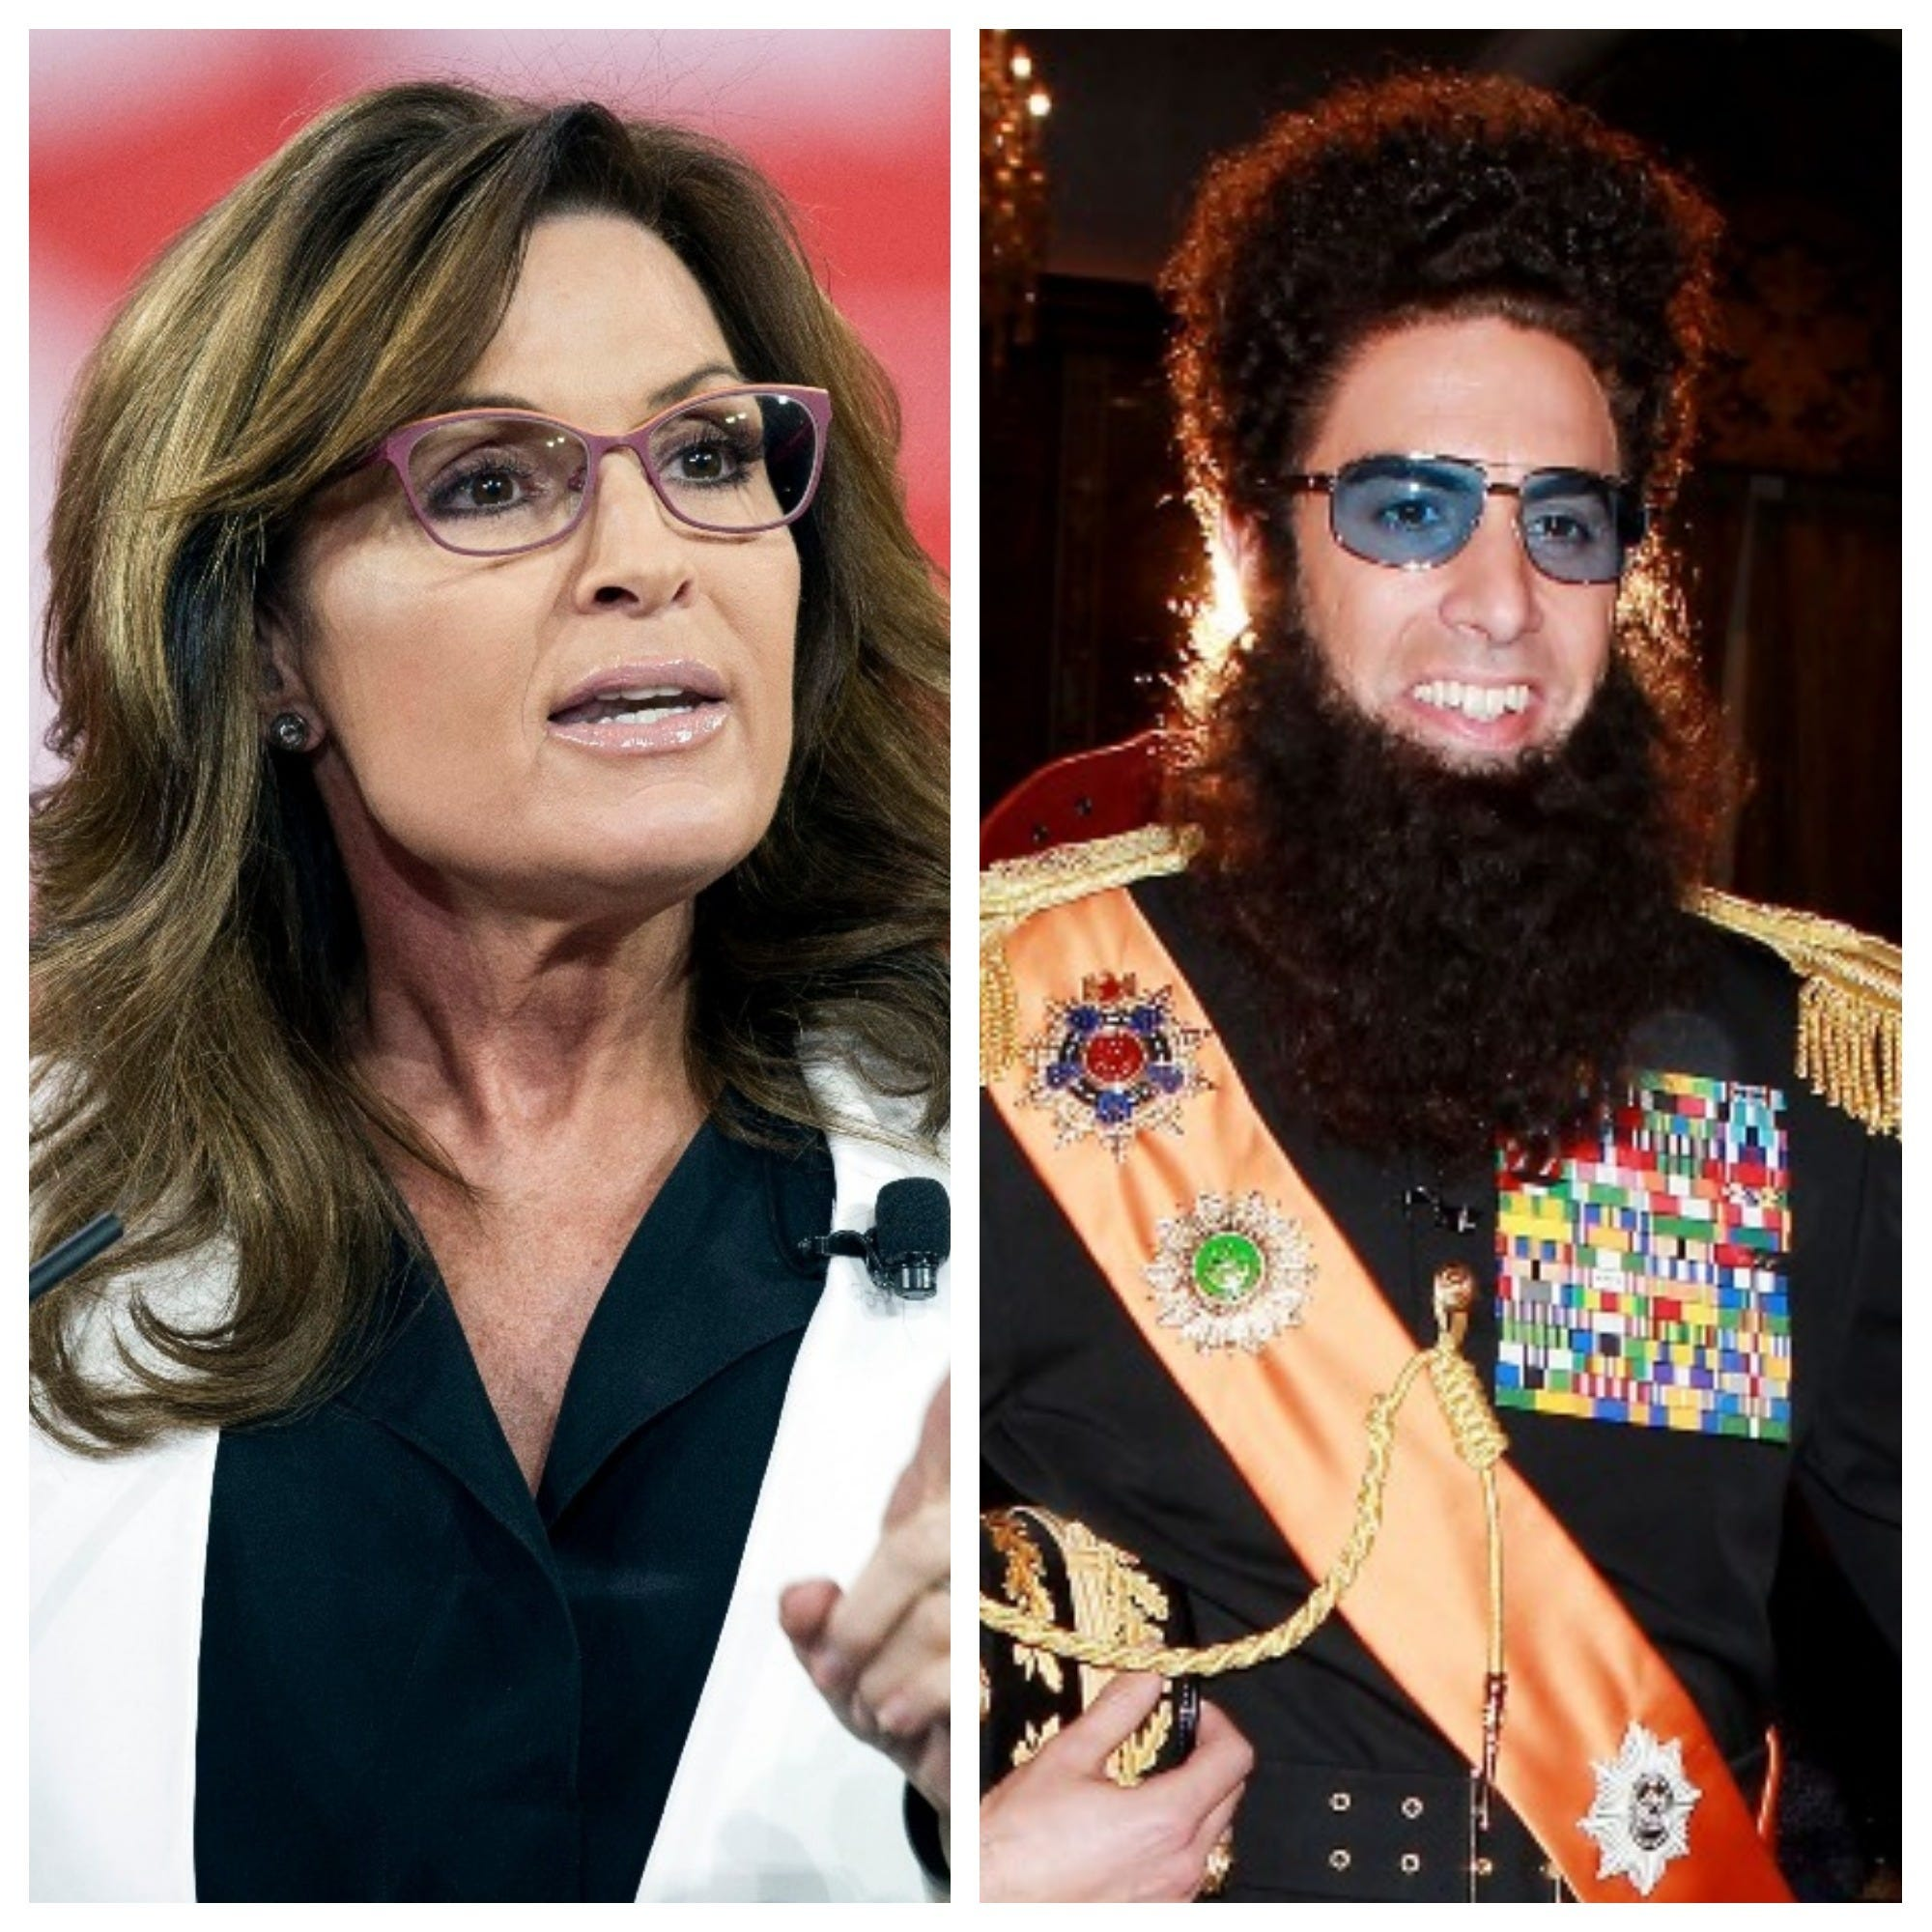 Showtime says Sacha Baron Cohen's new show proved Sarah Palin wrong: He didn't pose as veteran